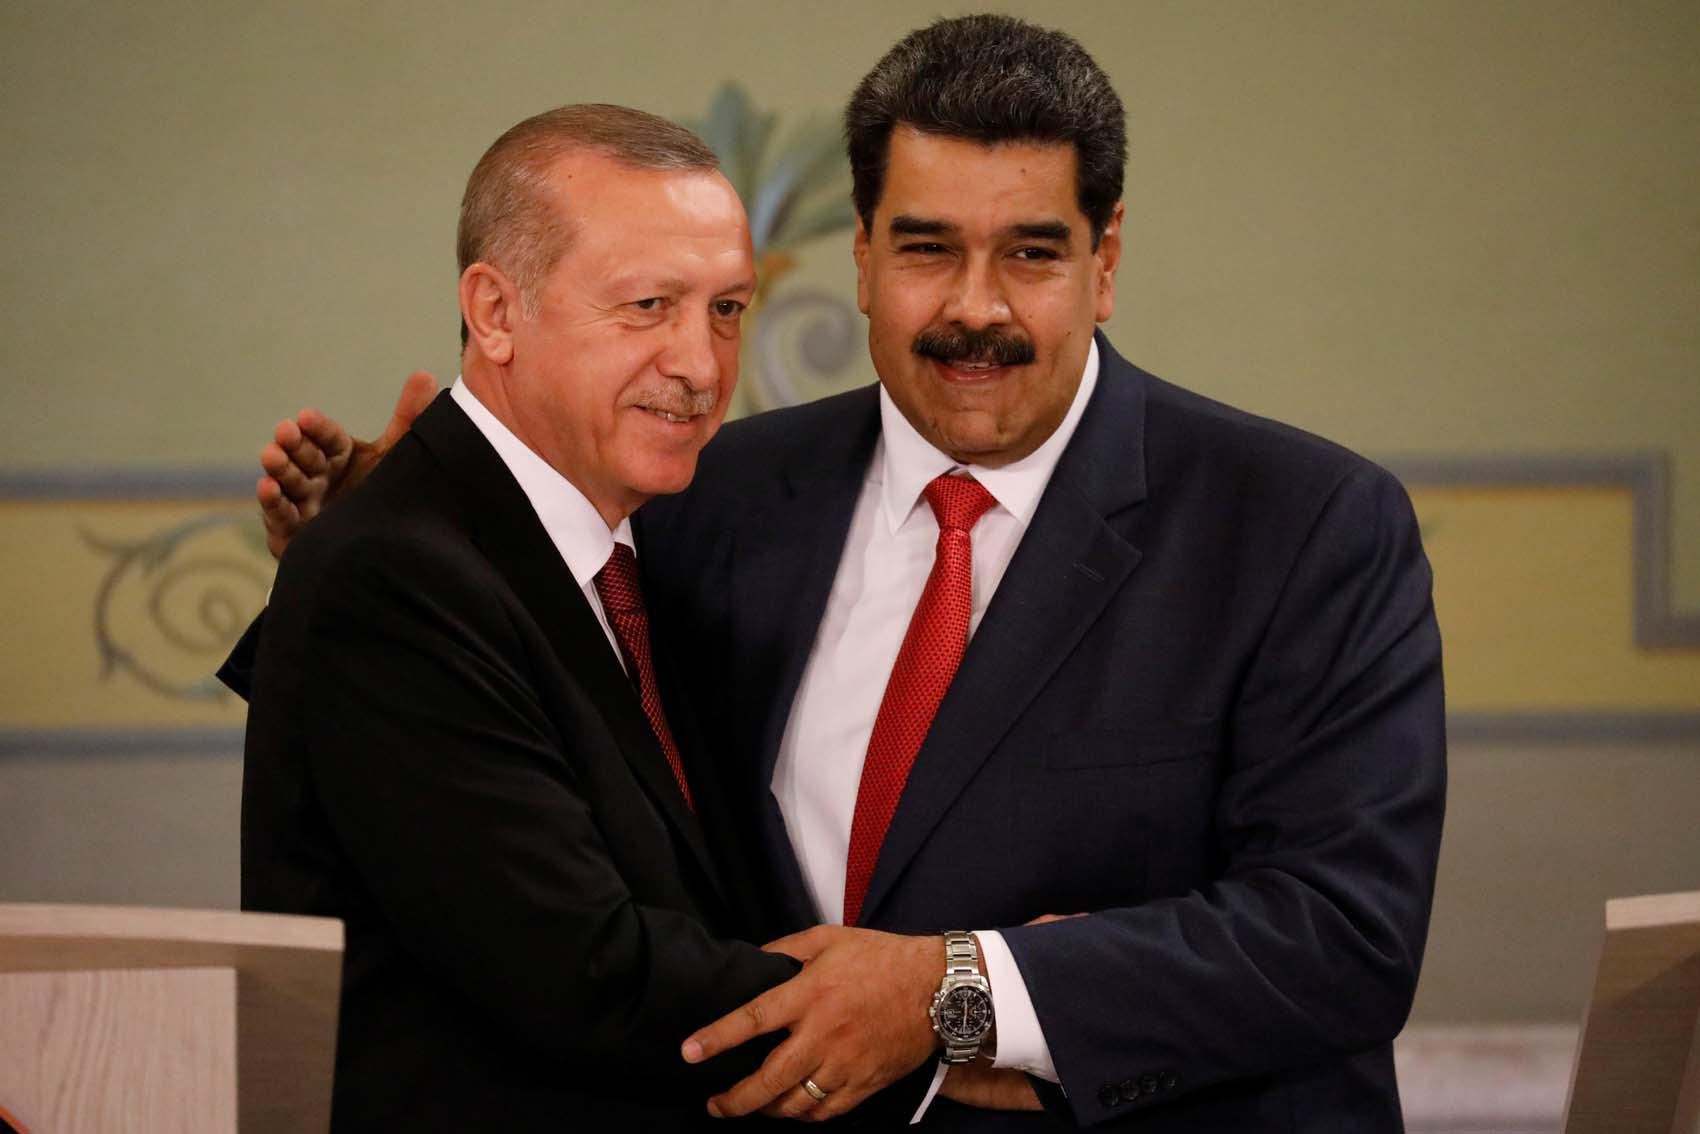 Turkish President Tayyip Erdogan and Venezuela's President Nicolas Maduro attend a news conference after an agreement-signing ceremony between Turkey and Venezuela at Miraflores Palace in Caracas, Venezuela December 3, 2018. REUTERS/Manaure Quintero